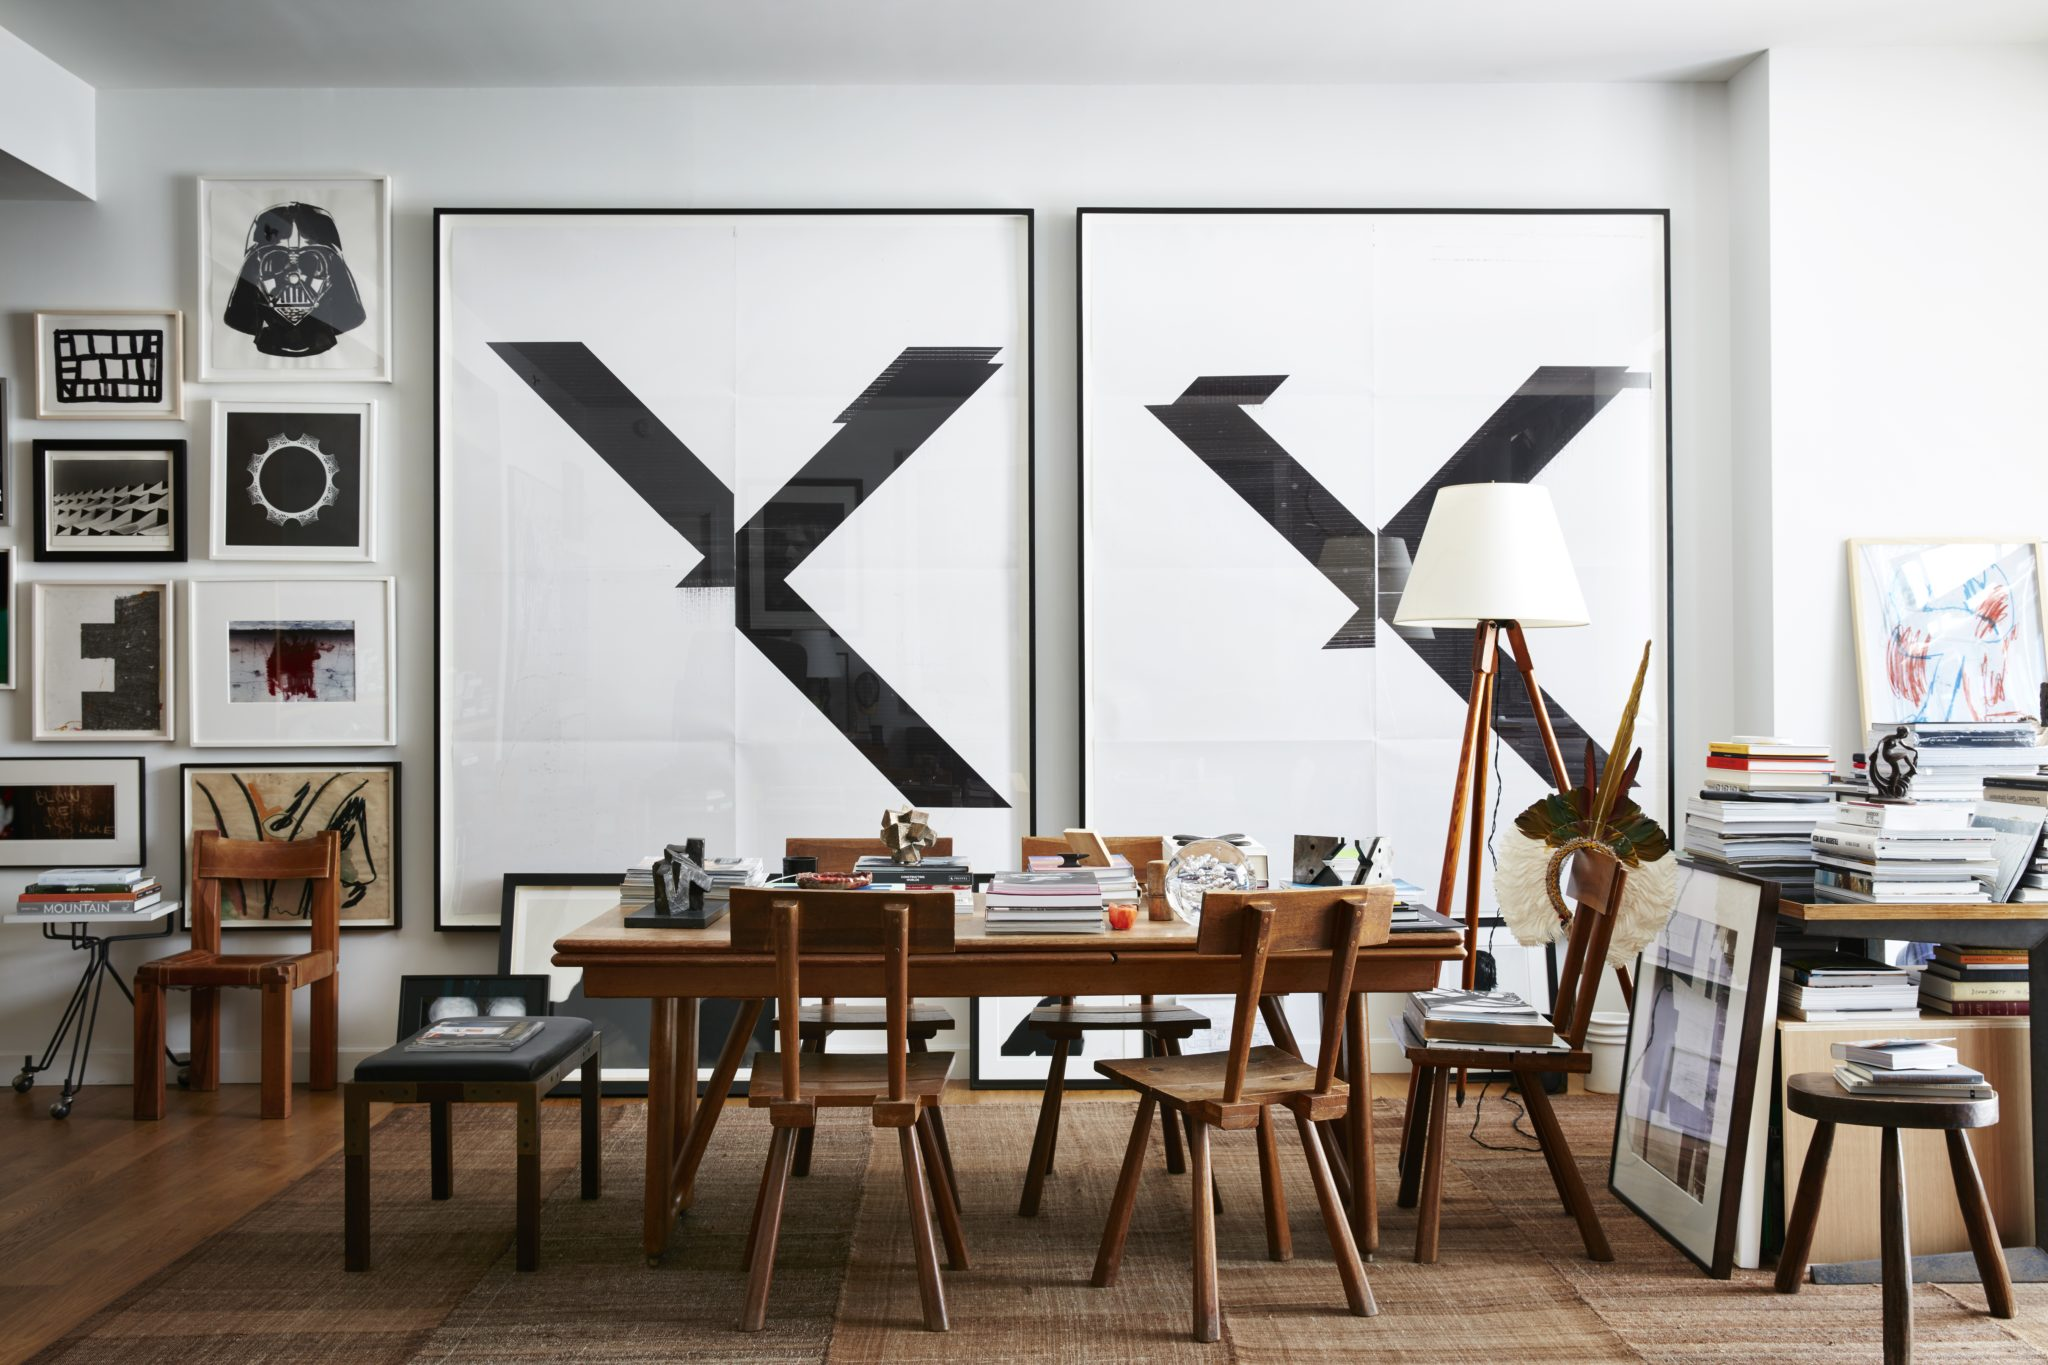 Two Wade Guyton prints preside over a Guillerme et Chambron table and Marolles chairs in the dining area of the designer's own SoHo apartment in a Gwathmey Siegel-designed building.